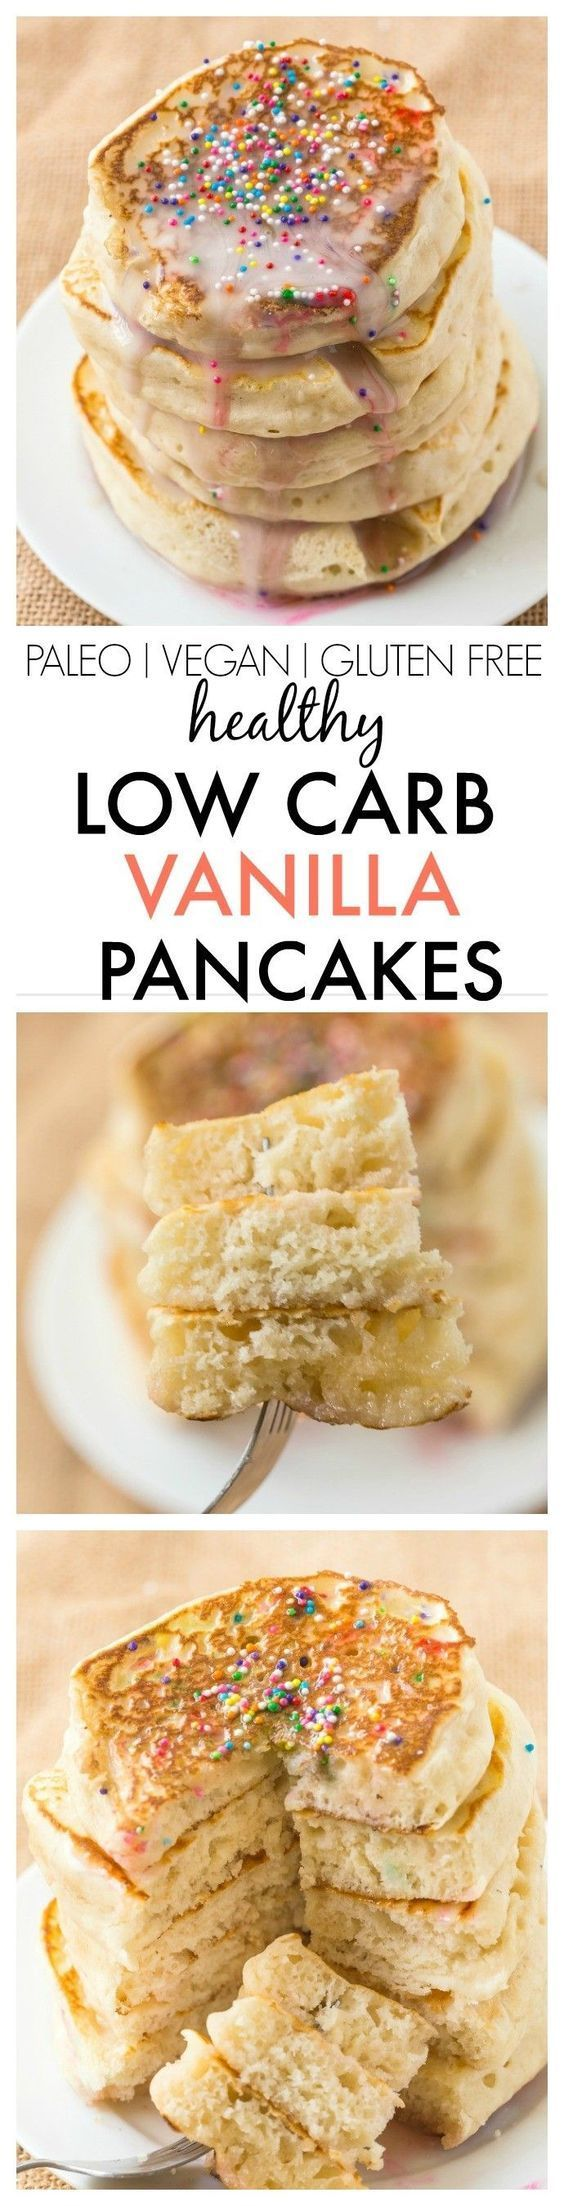 Healthy Thick and Fluffy Low Carb Pancakes which are SO easy, delicious and low in calories but you wouldn't tell- The best low carb pancakes out there! {vegan, gluten free, paleo recipe}- thebigmansworld.com